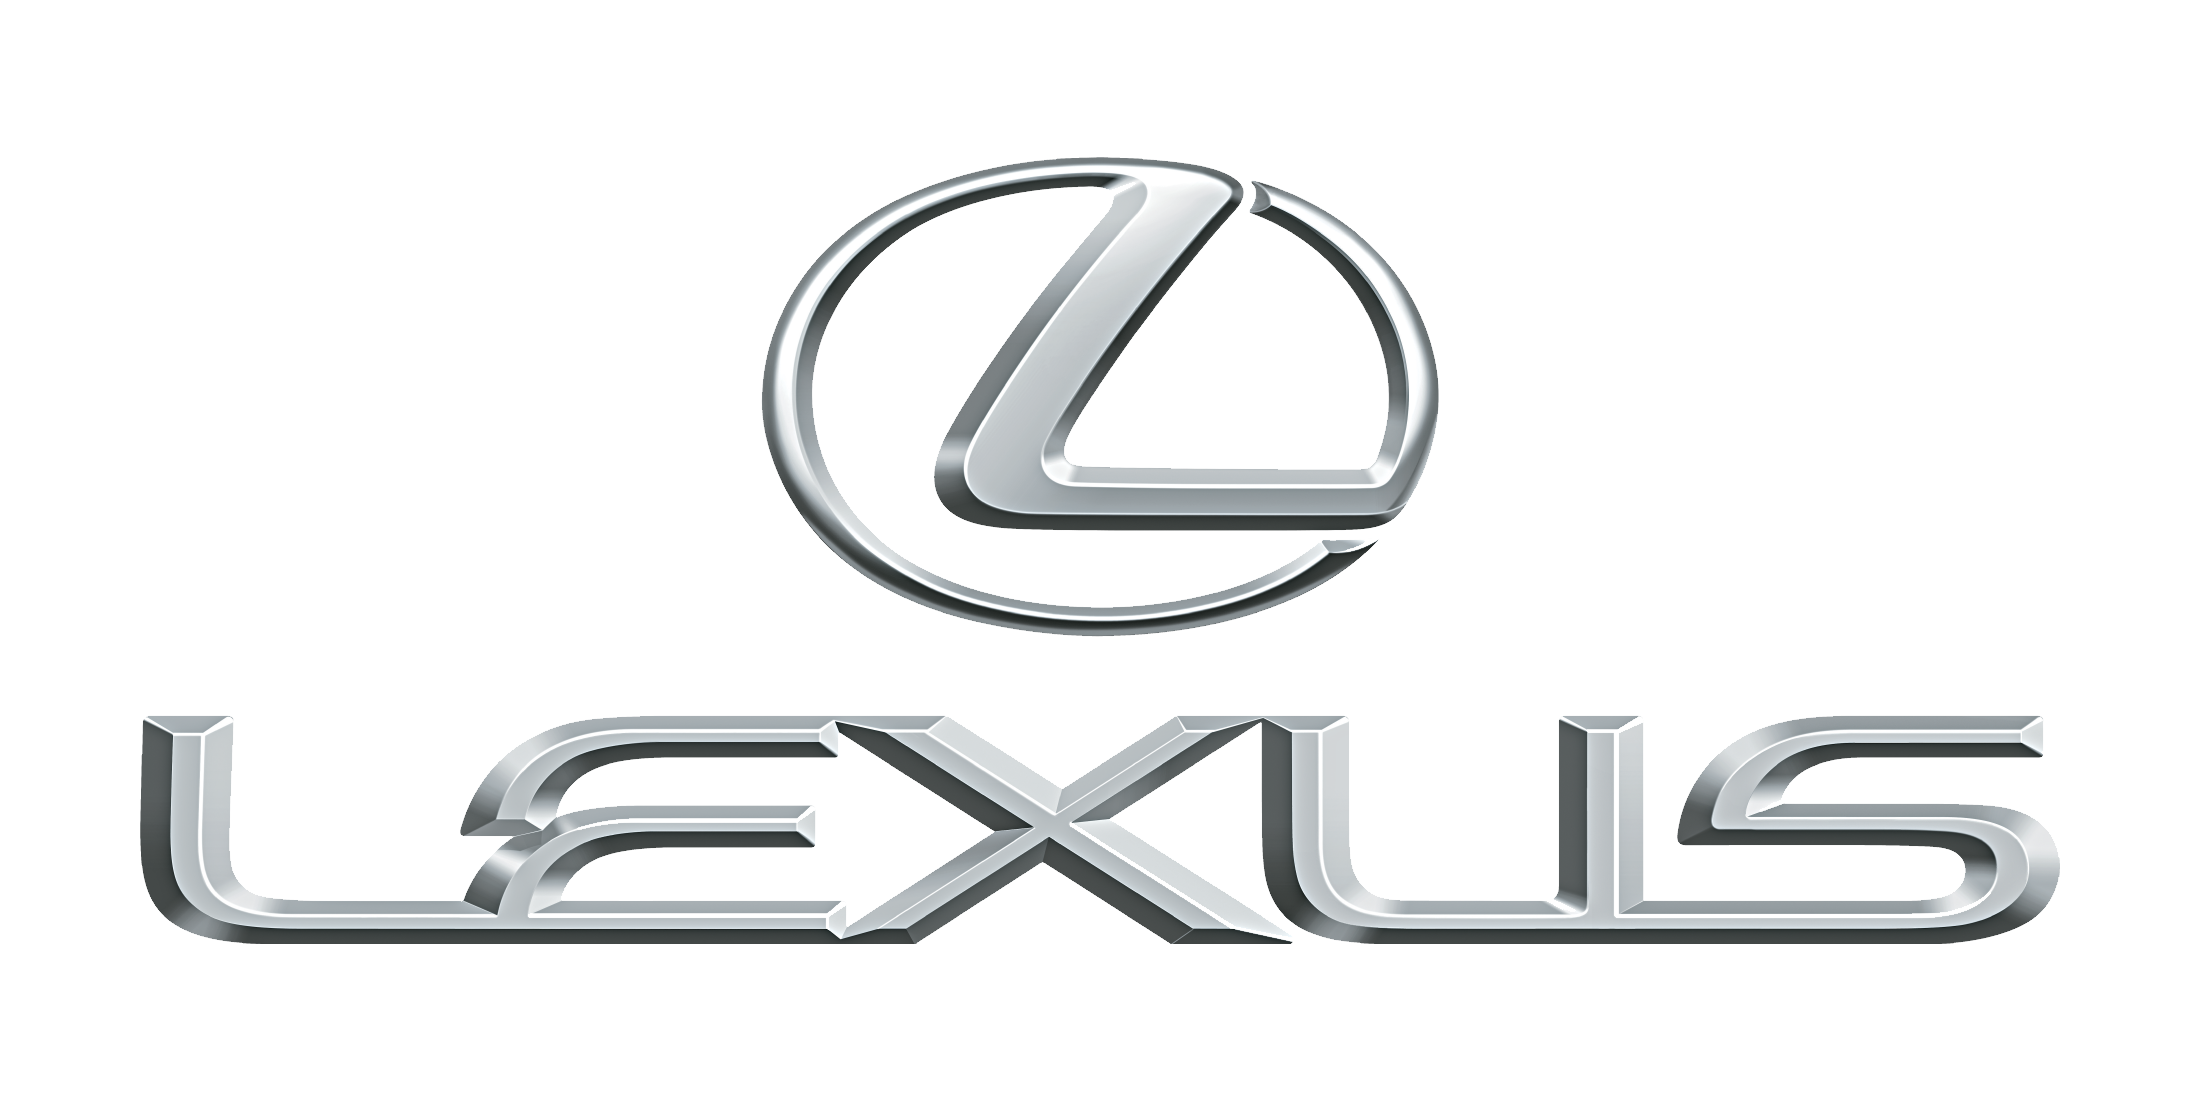 Lexus Logo vector Transparent Background Download - Lexus Auto Logo Vector  PNG - Lexus Auto Vector PNG